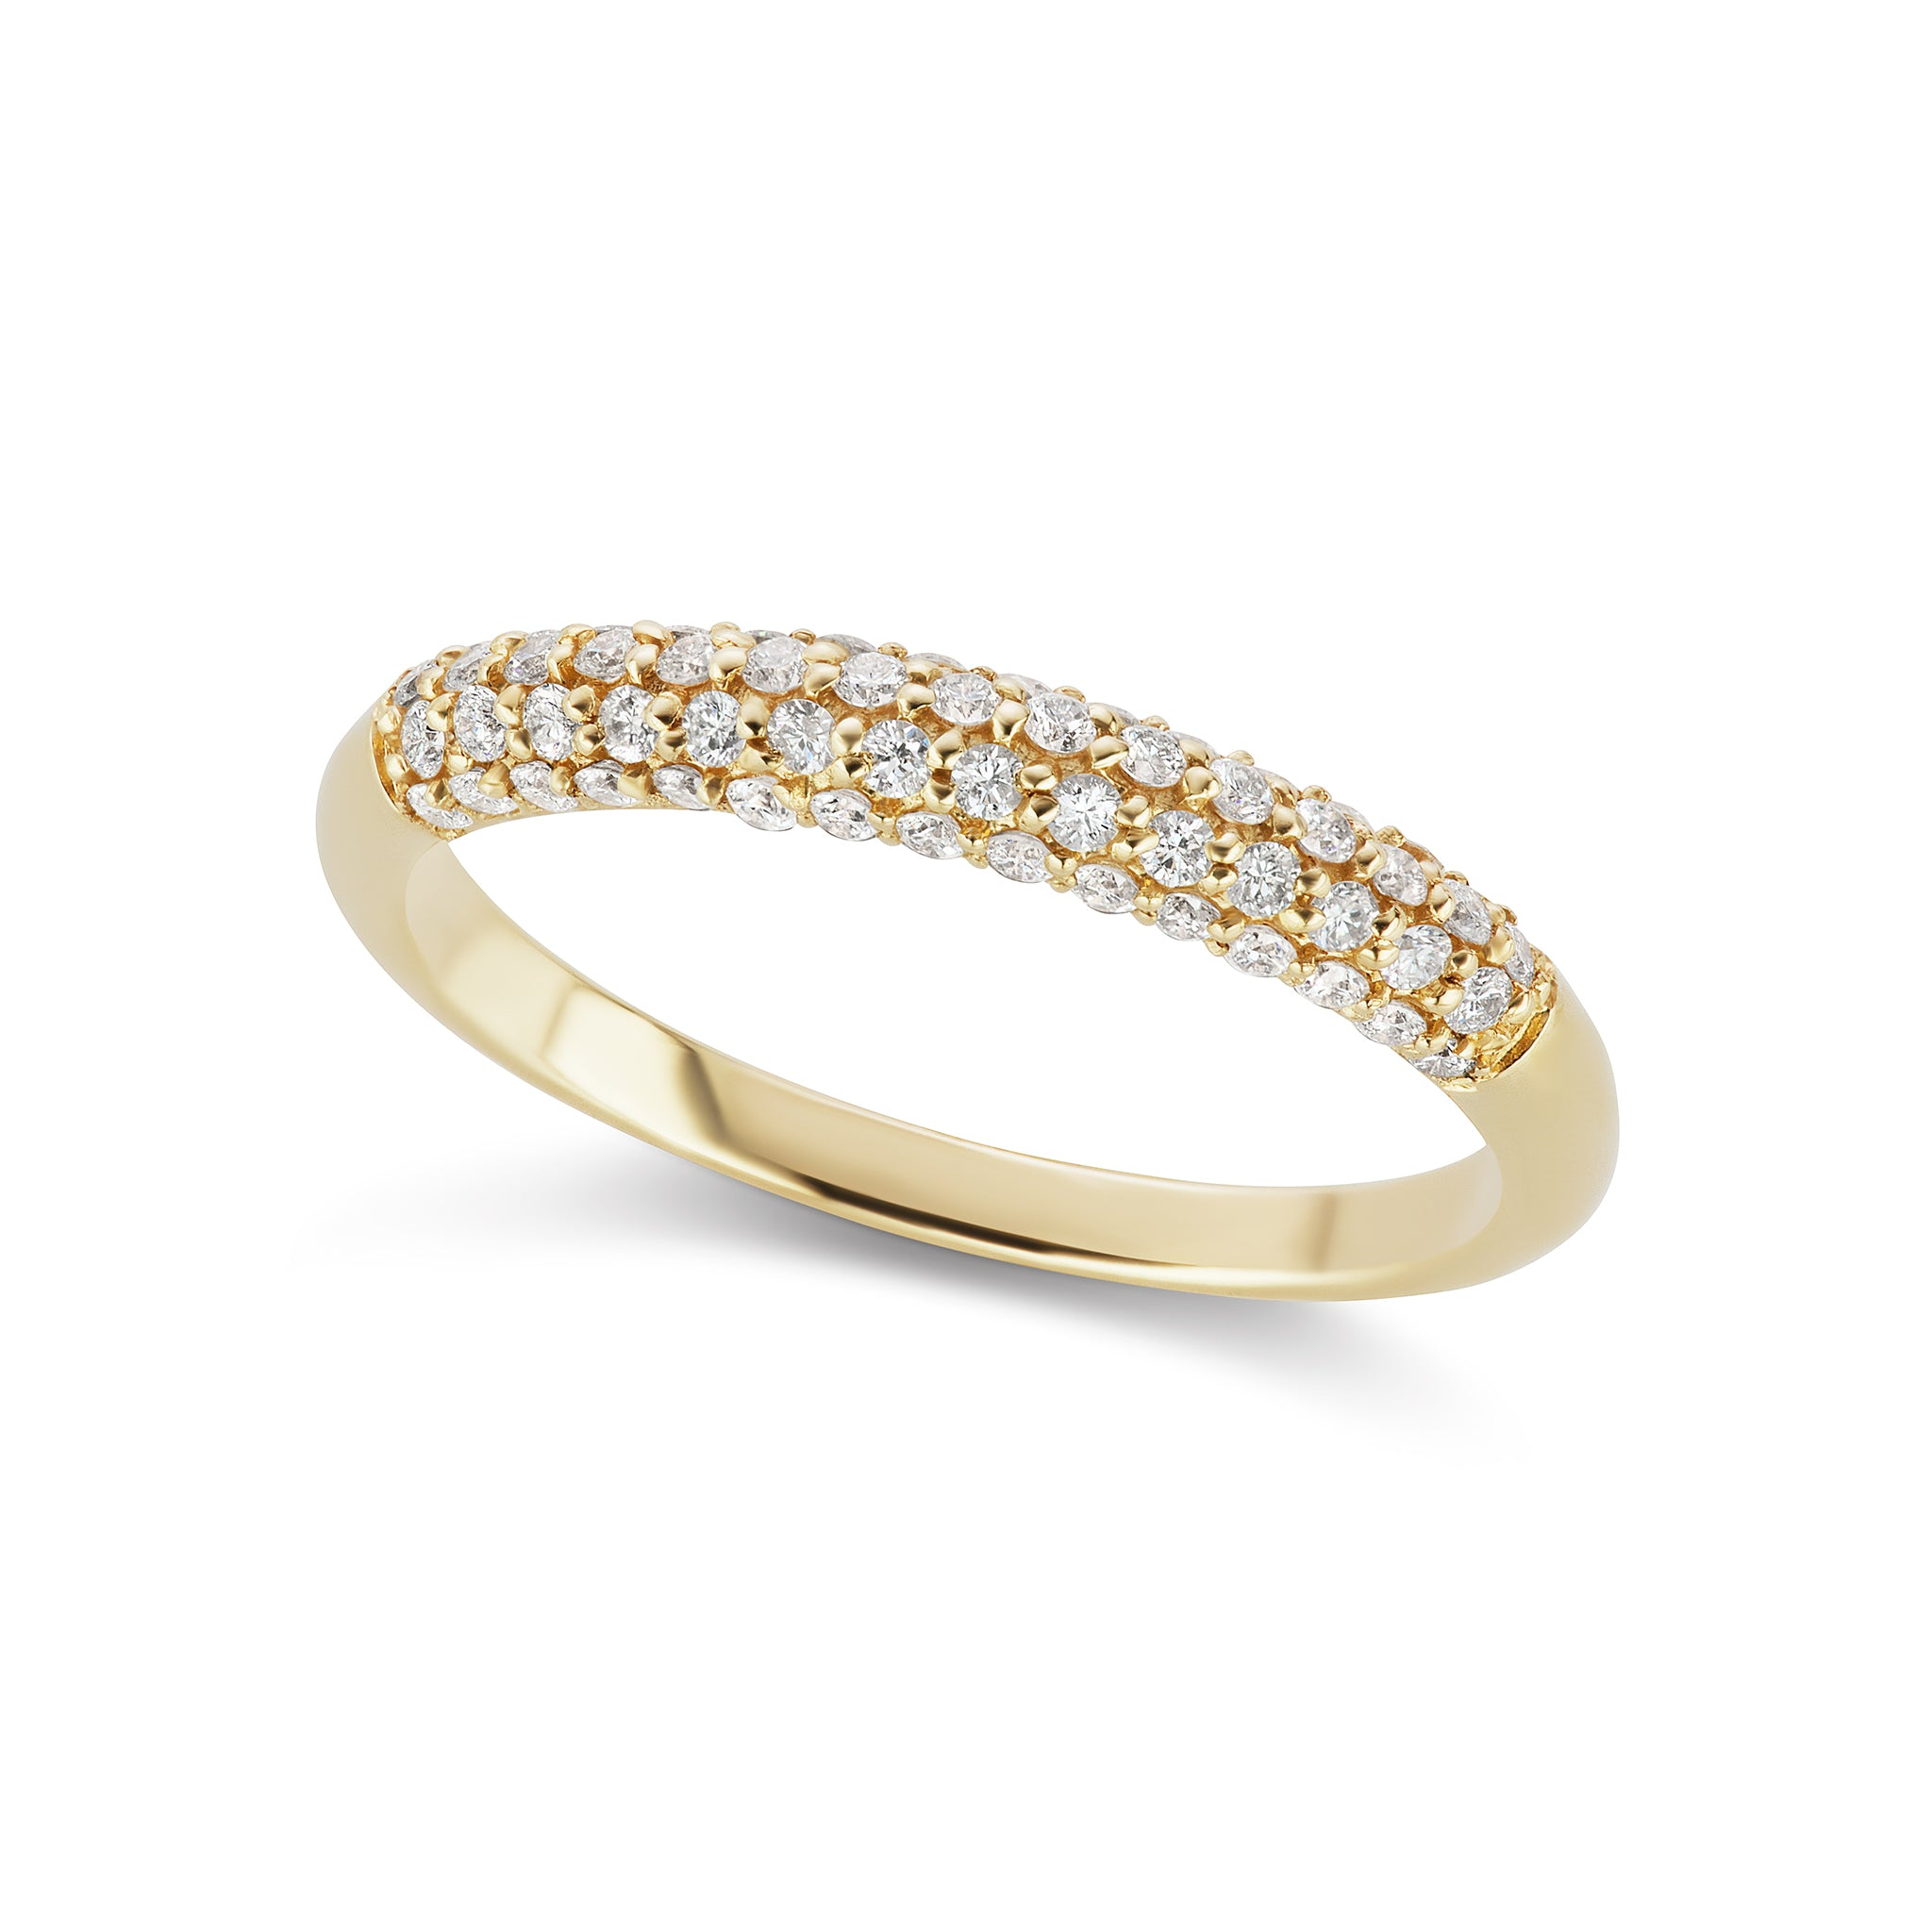 The Gold Diamond Sidekick Ring